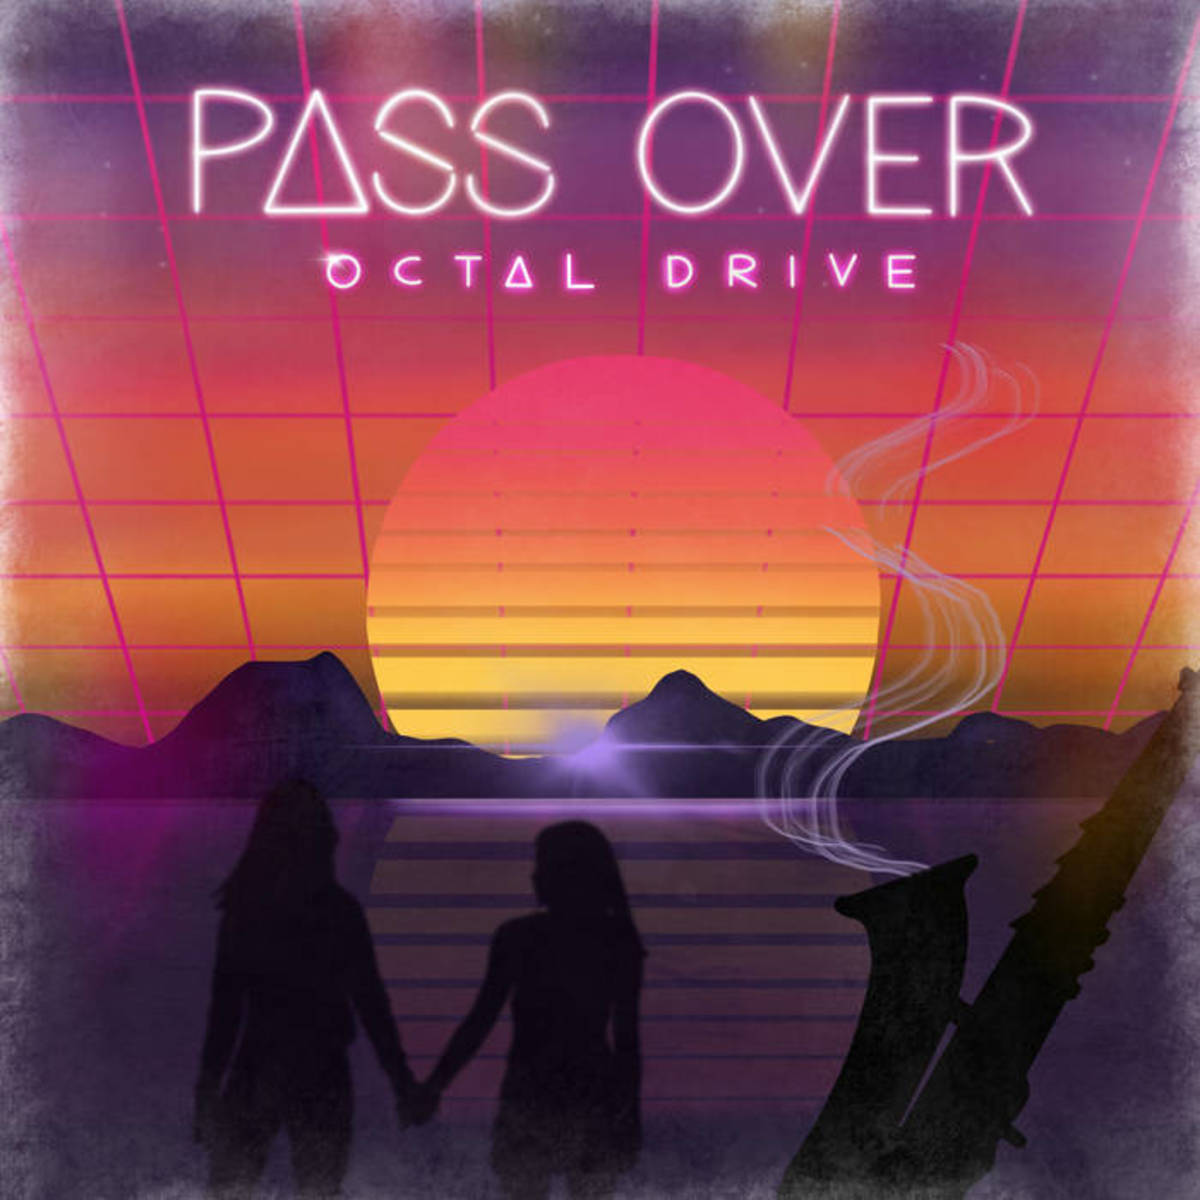 synth-single-review-pass-over-by-octal-drive